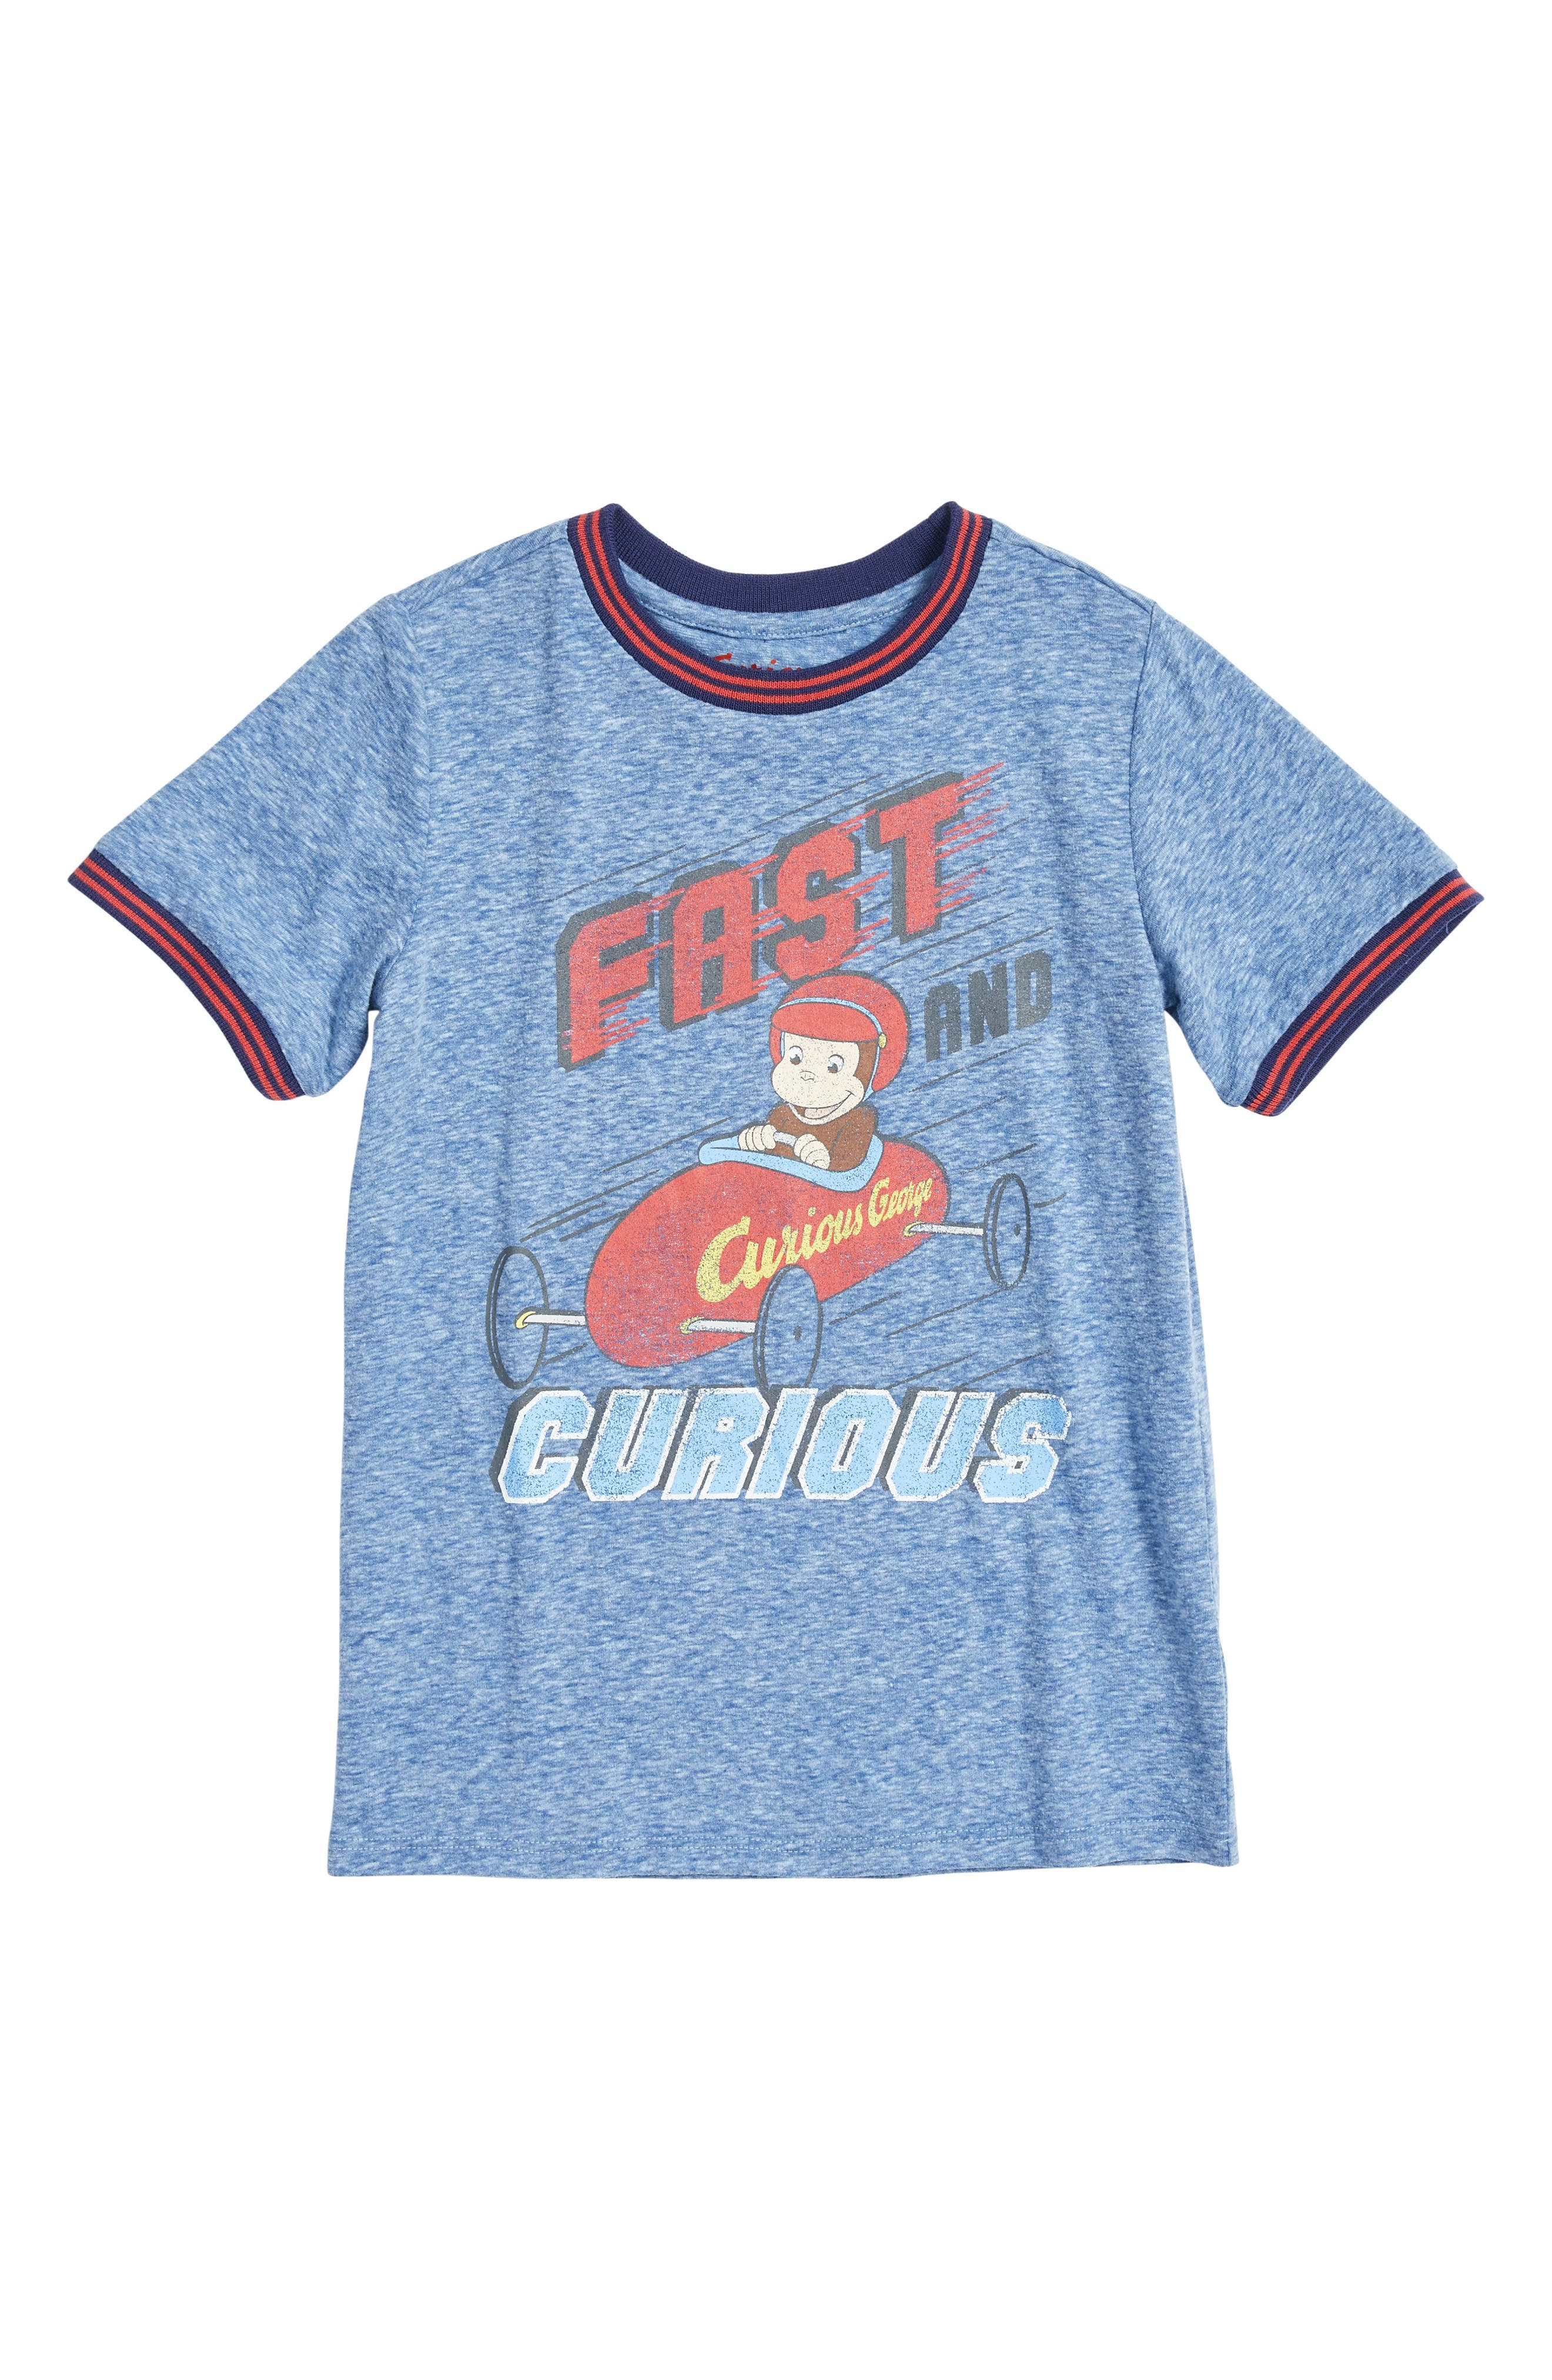 Fast & Curious George Graphic T-Shirt,                         Main,                         color,